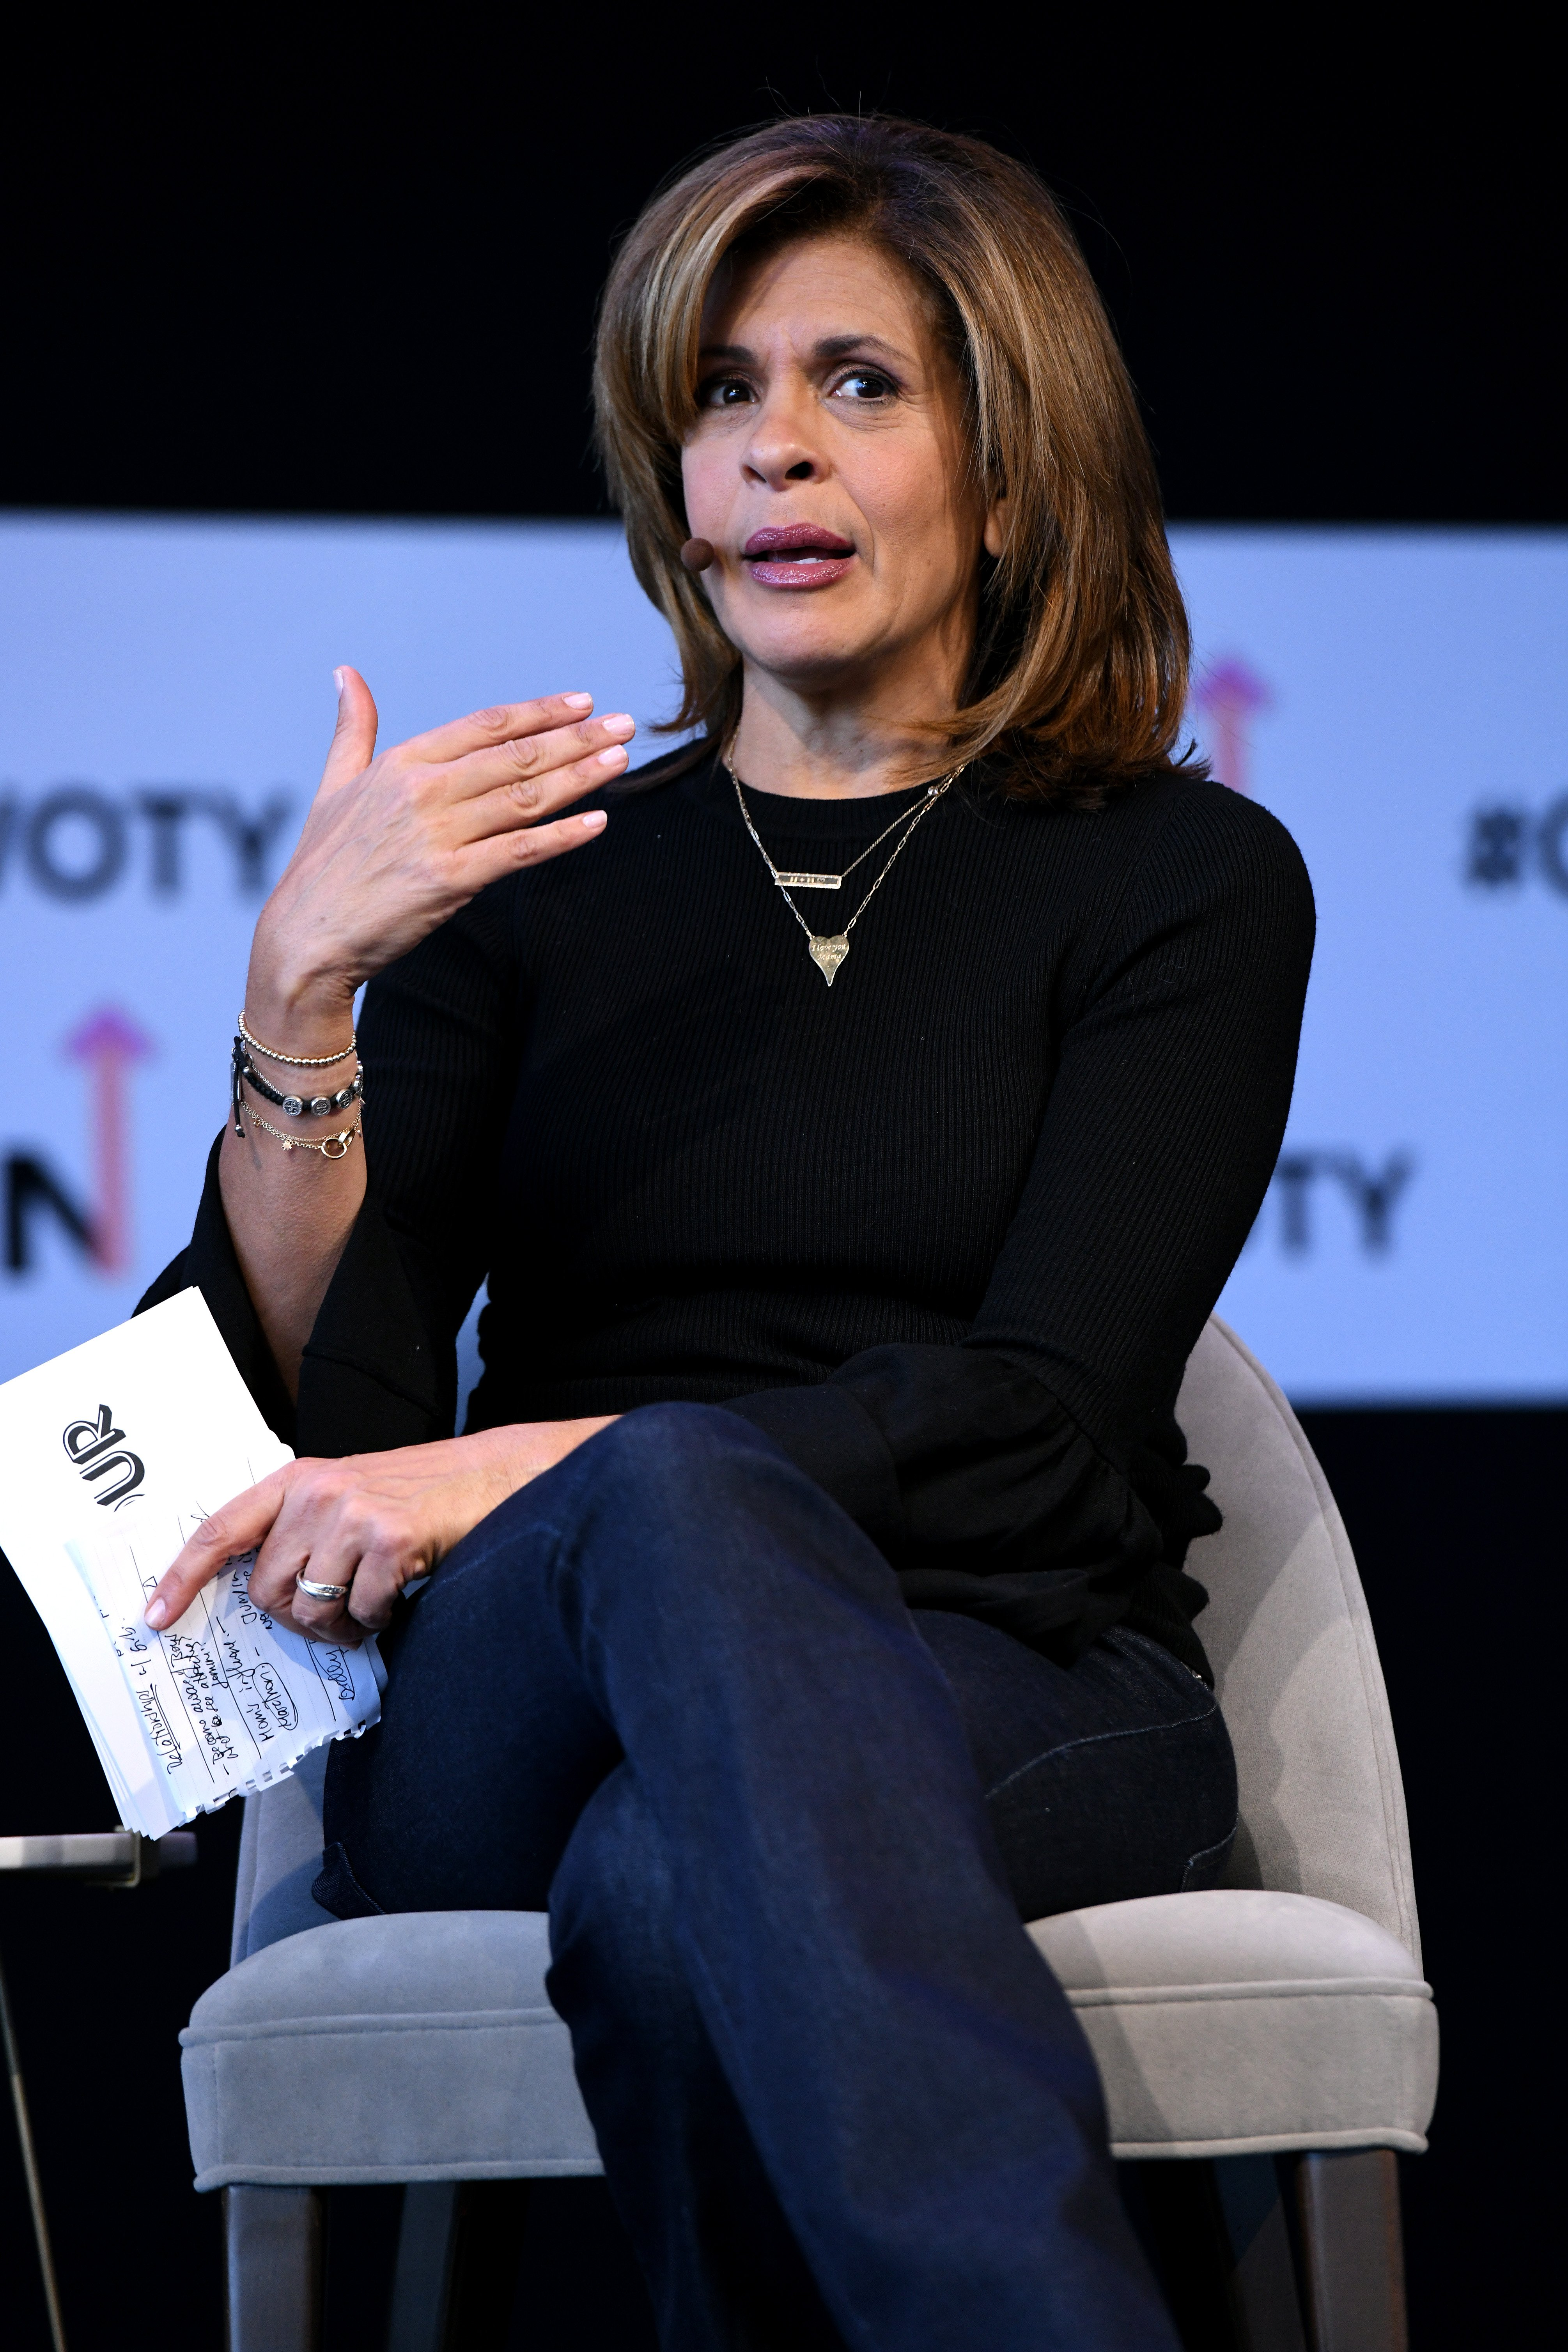 """Hoda Kotb speaks at the """"Closing the Dream Gap: Showing Girls What's Next"""" panel event in New York City on November 11, 2018 